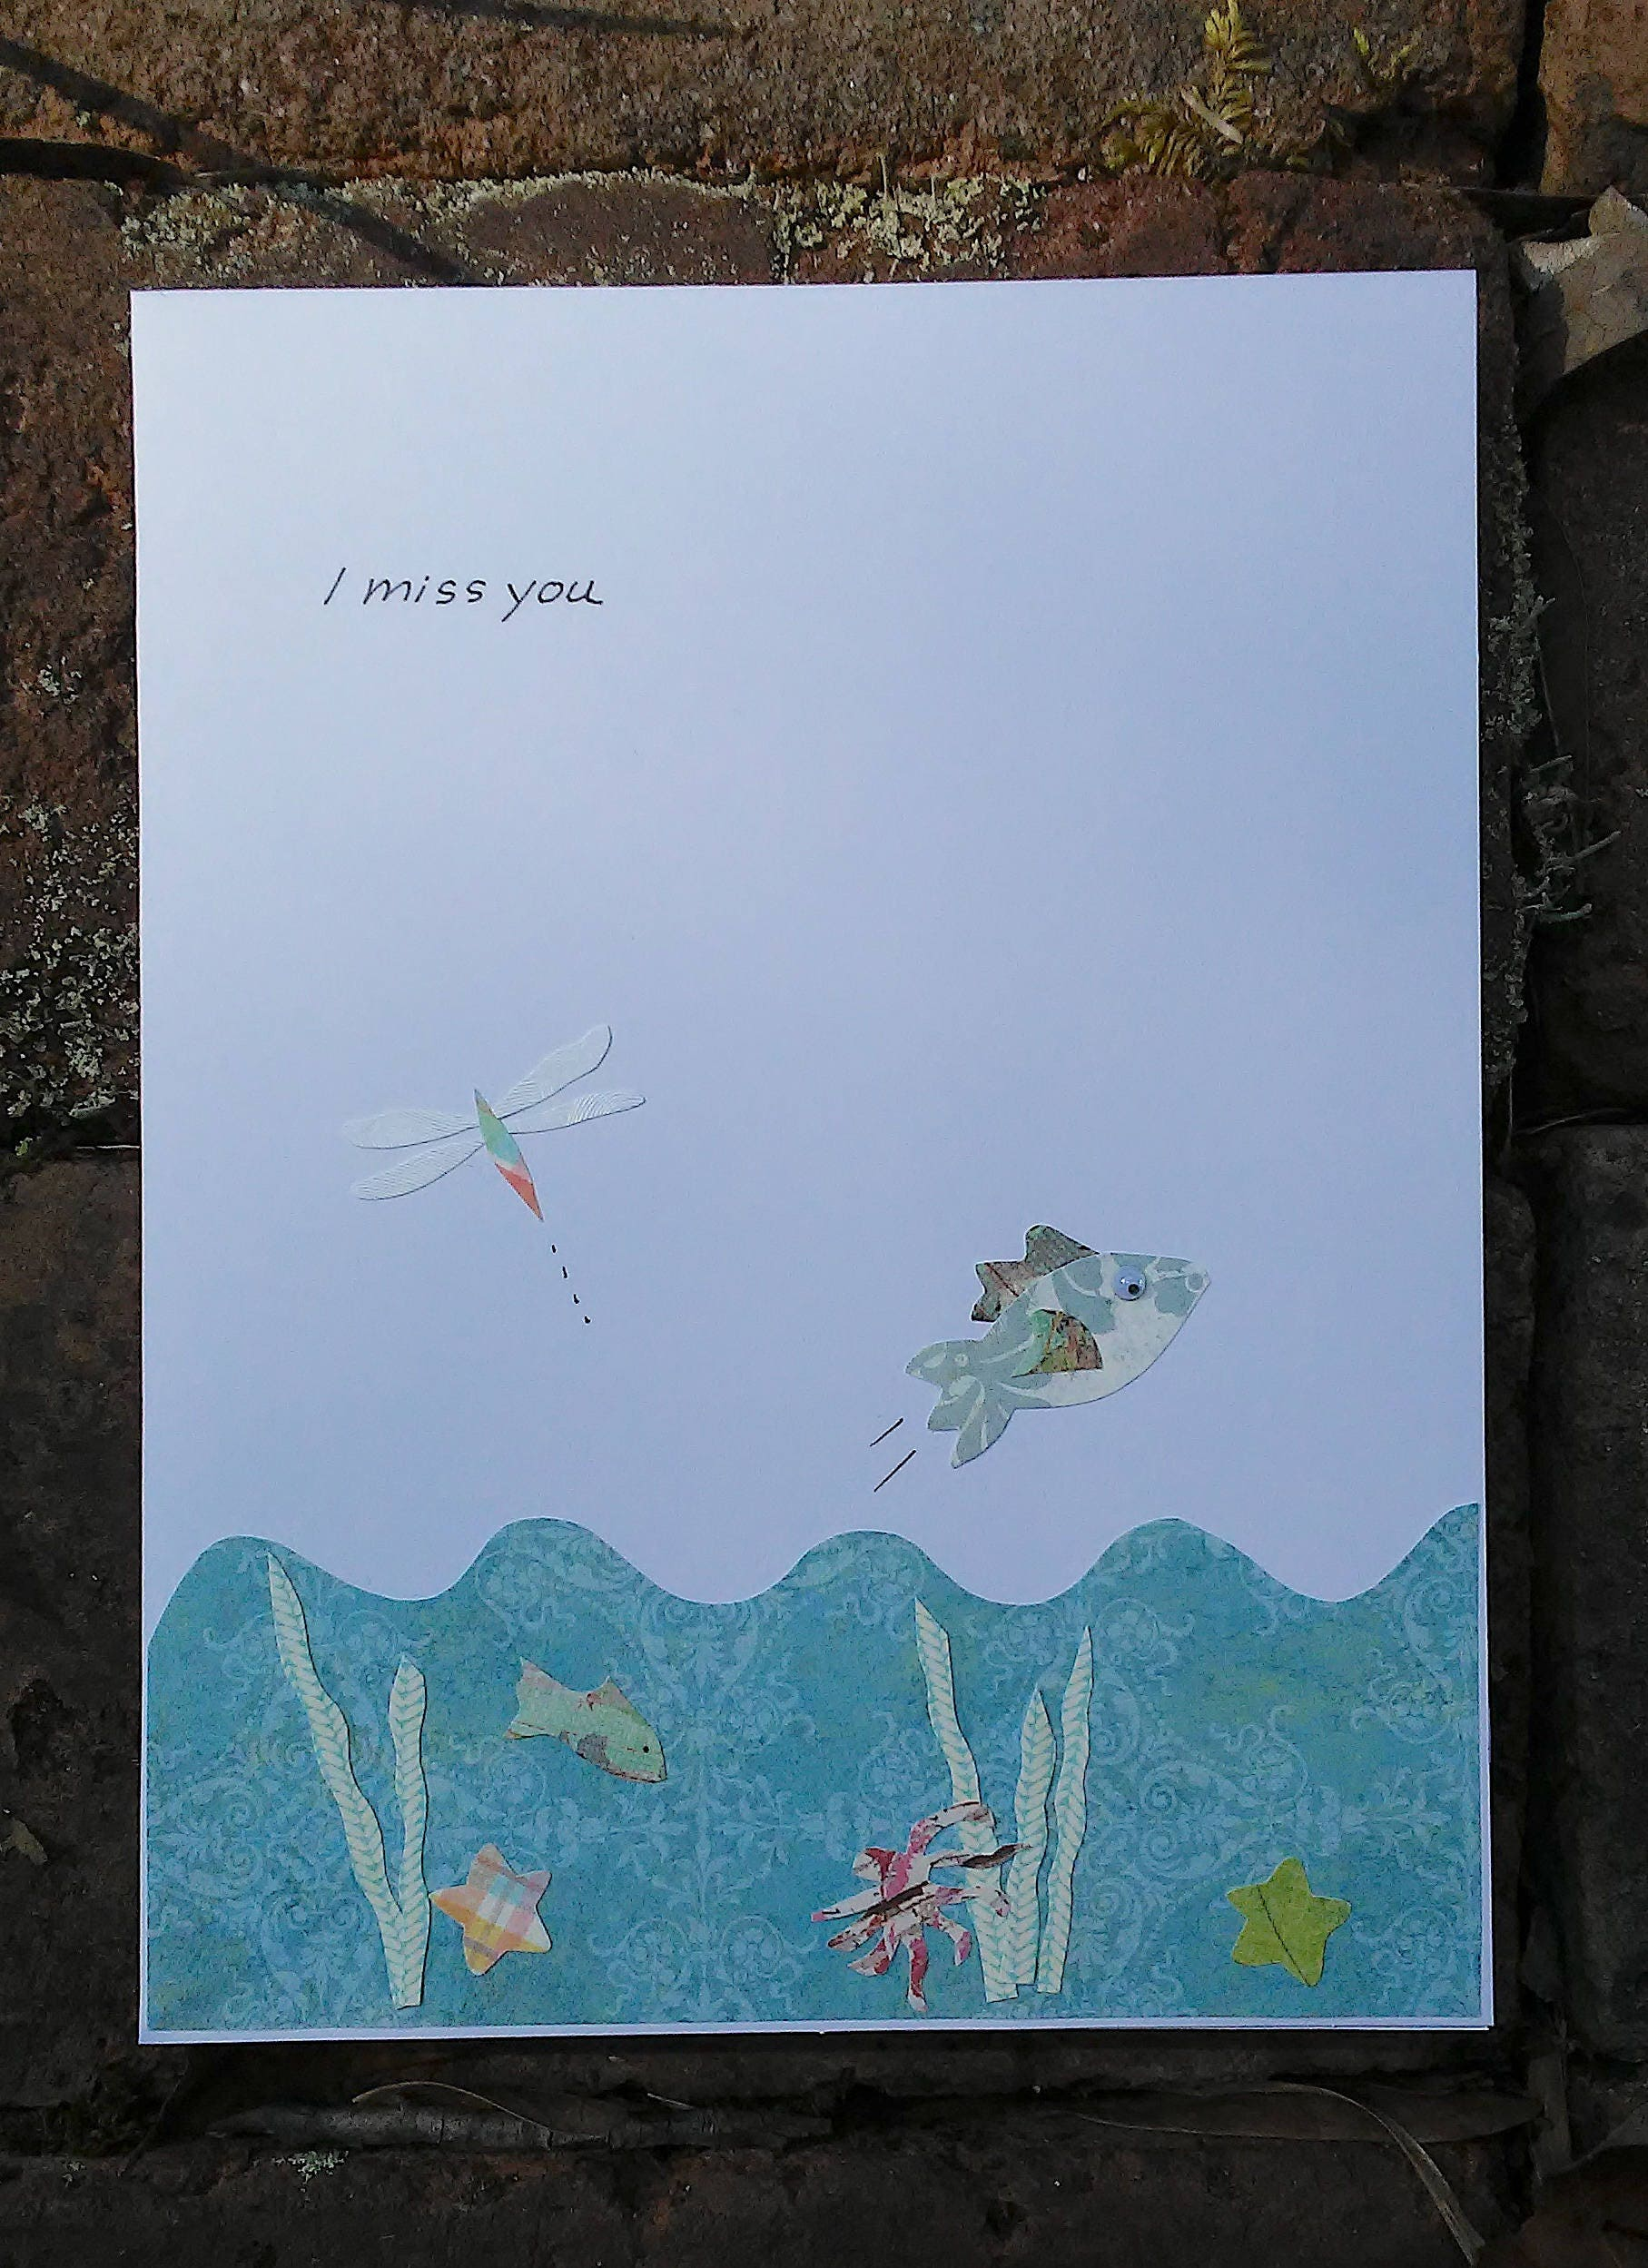 Jumping fish miss you greeting card free shipping jumping fish miss you greeting card free shipping kristyandbryce Image collections